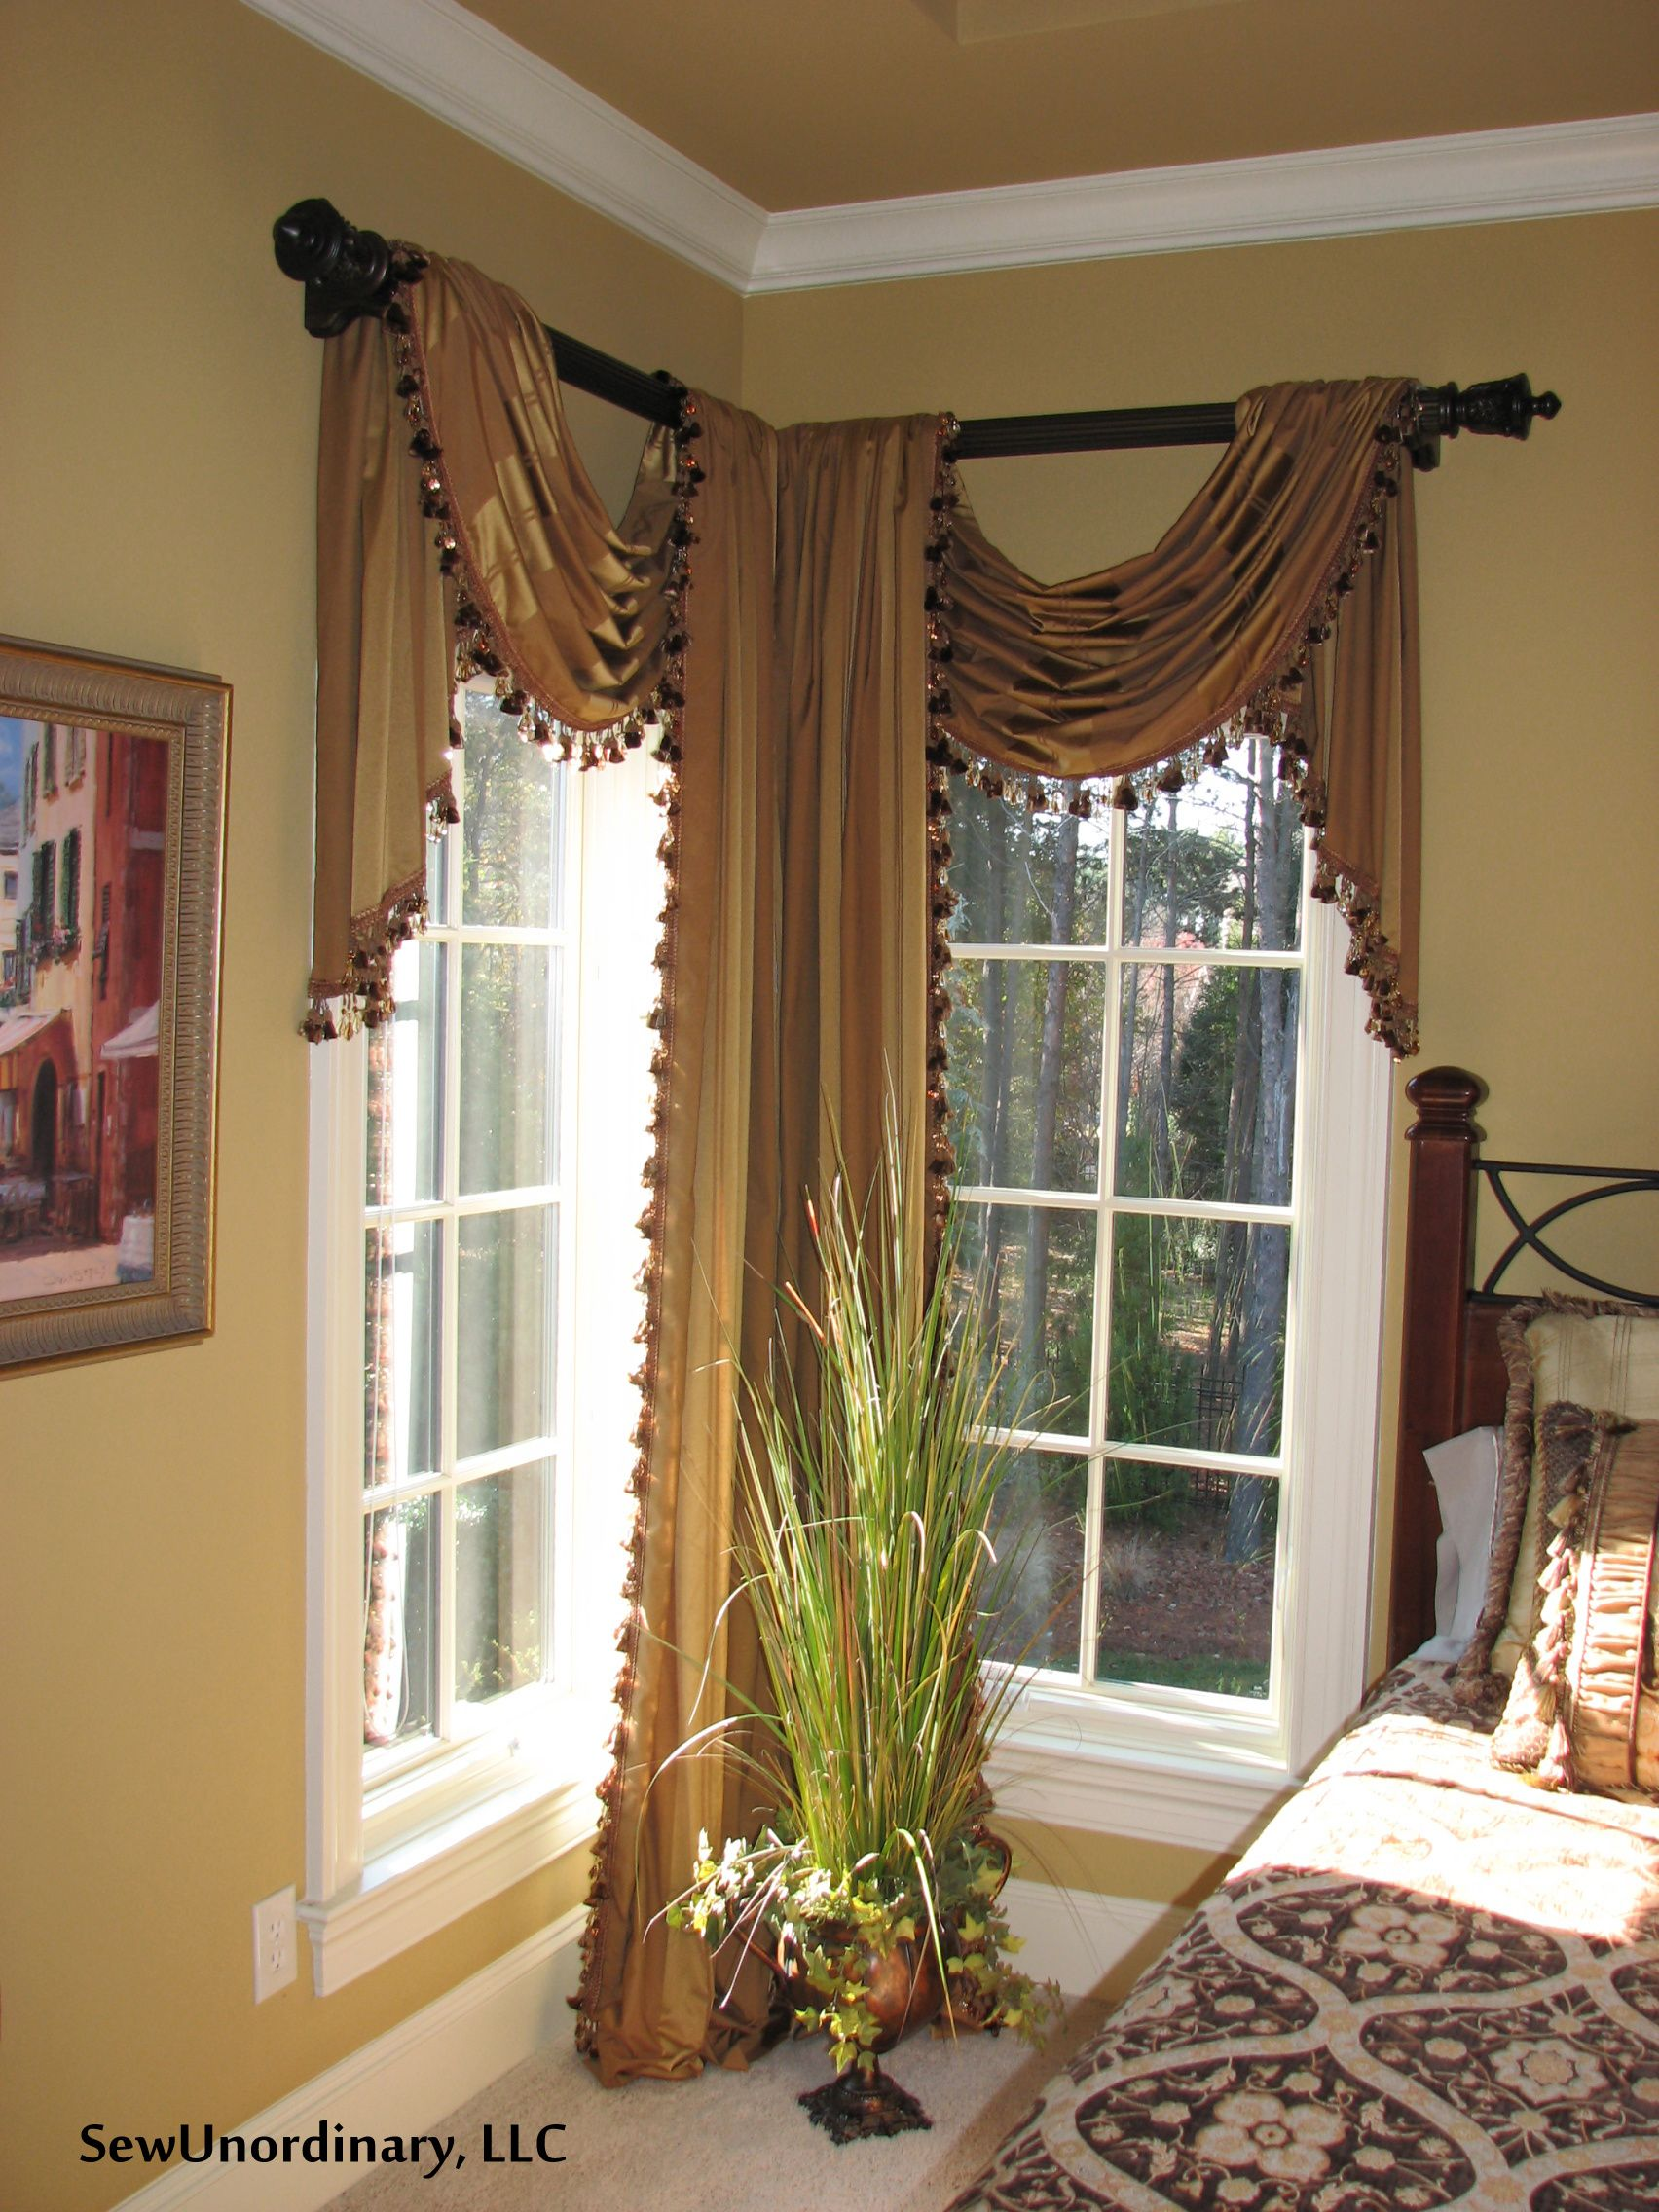 Black out curtains elegant valance curtains beaded valance curtains - Swags And Panels In Corner Window Corner Window Curtainscorner Windows Valance